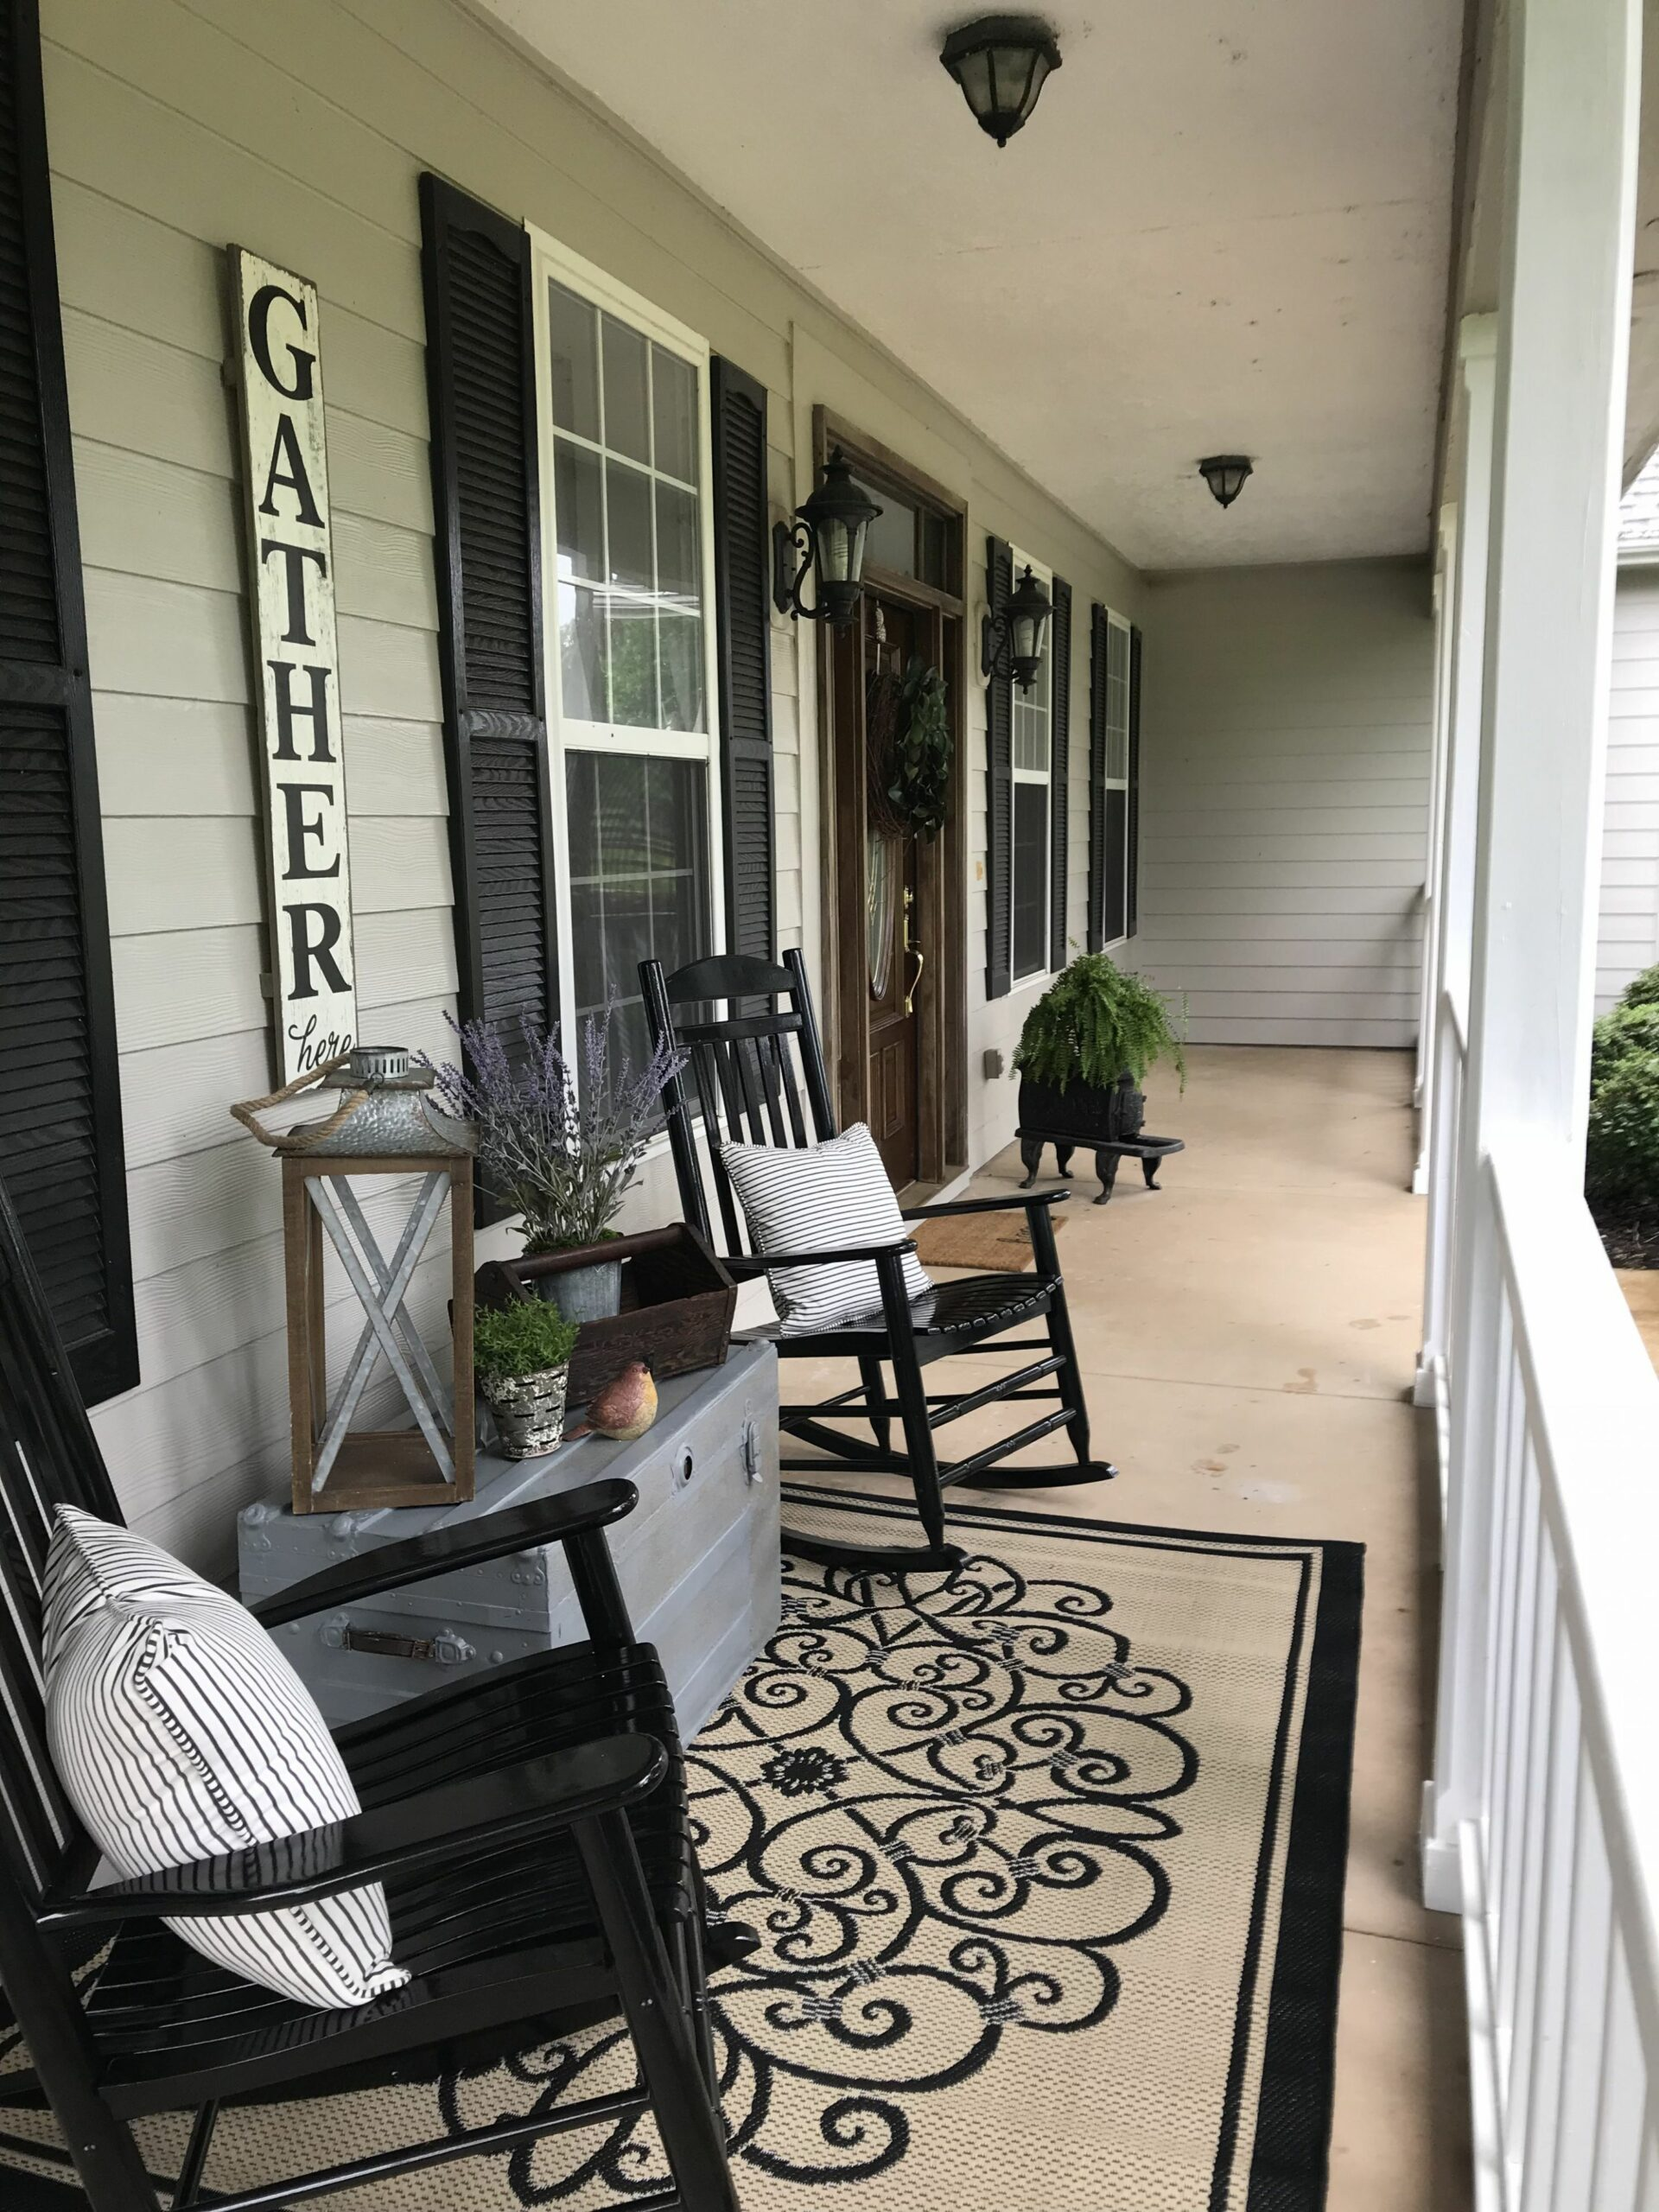 Pin by Tammy Lake on My Porch | Summer porch decor, Front porch ..